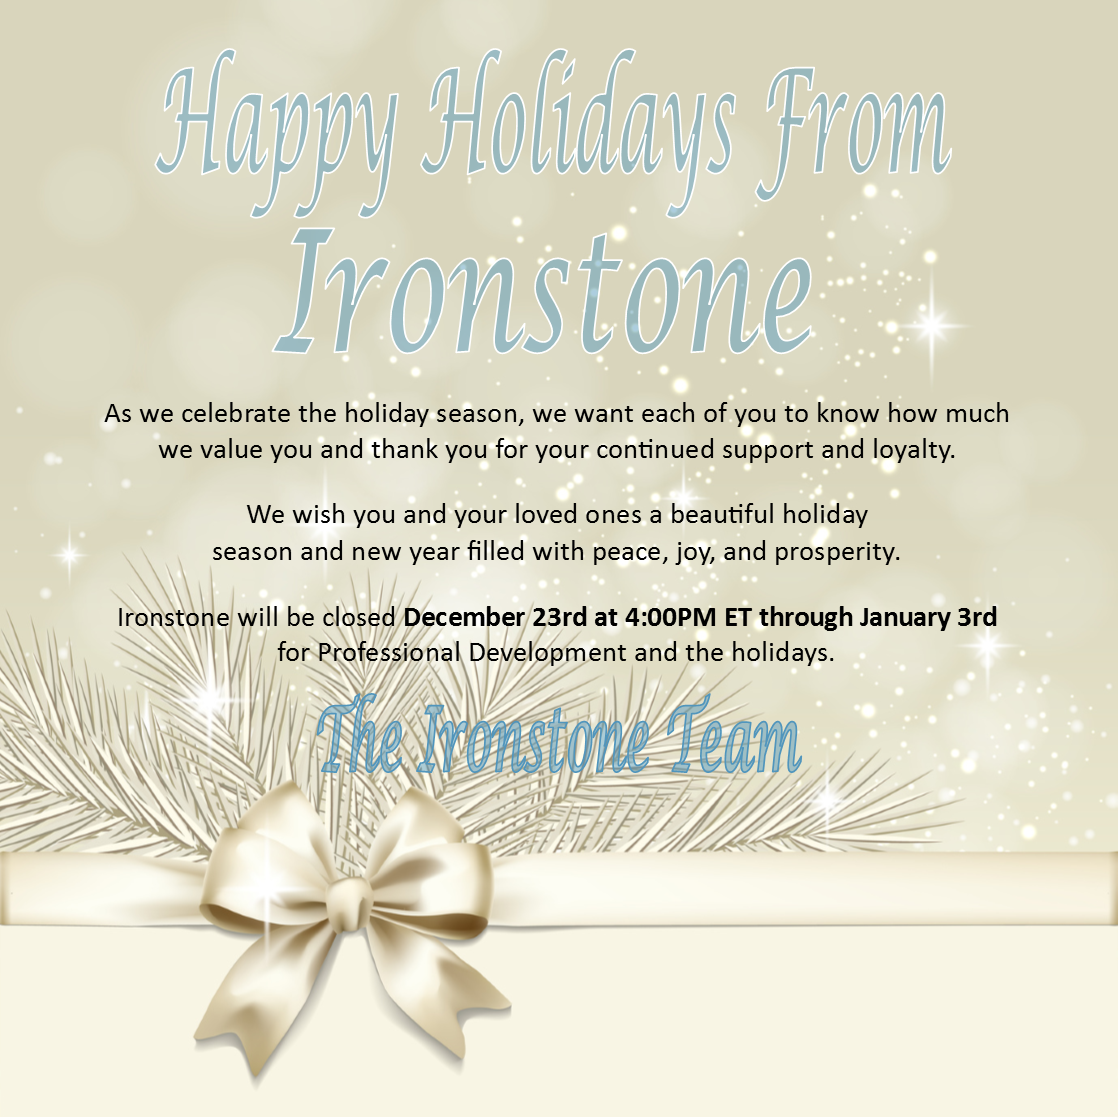 Happy Holidays From Ironstone